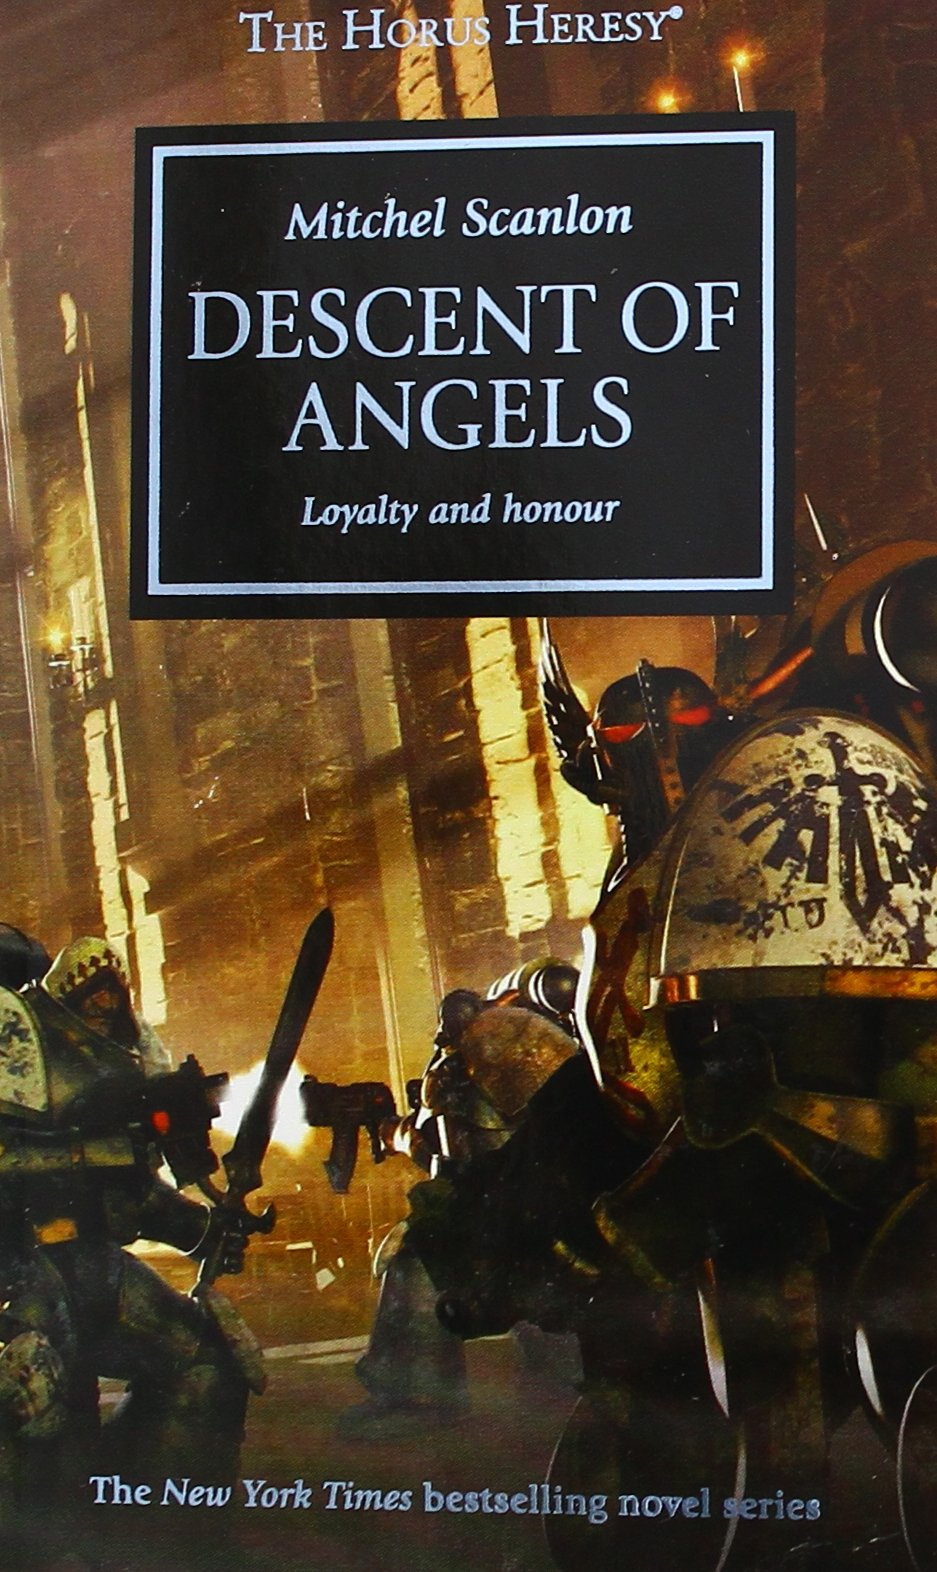 Horus Heresy book order